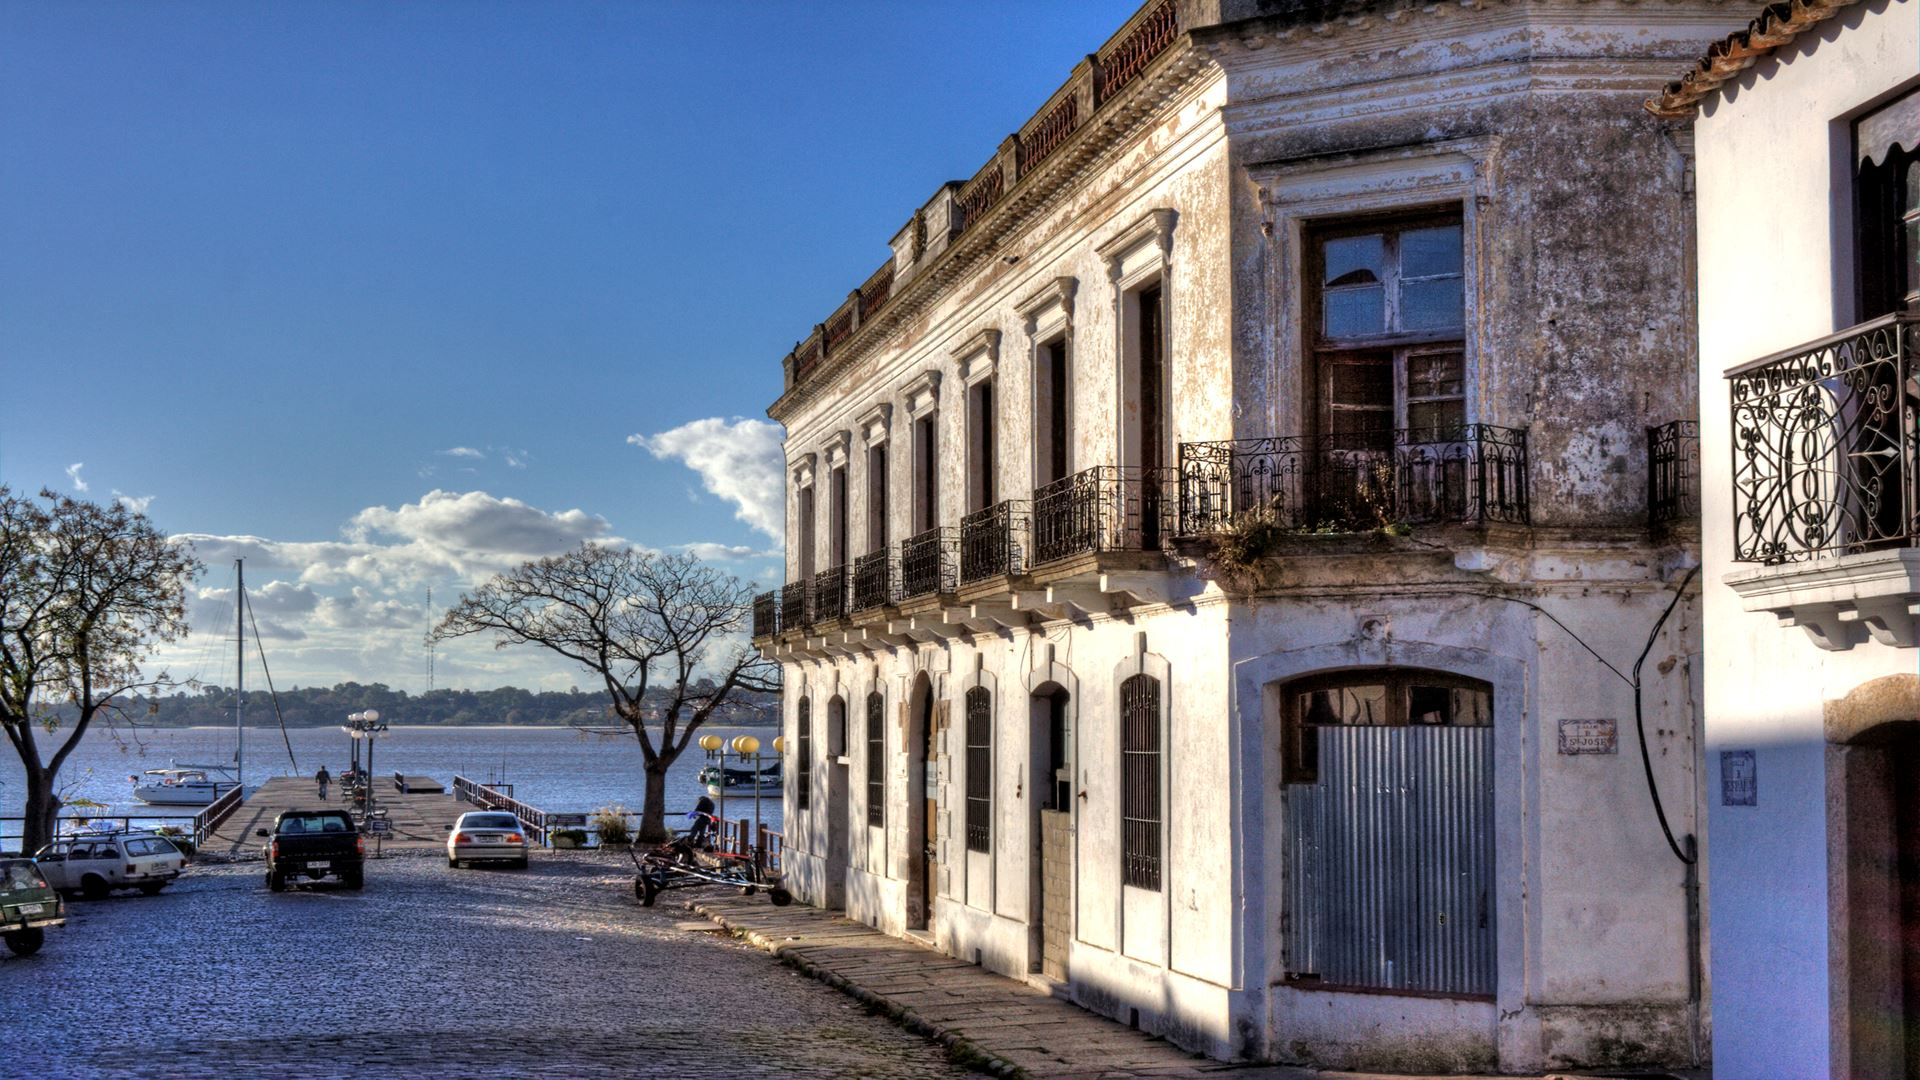 Private Tour to Colonia del Sacramento